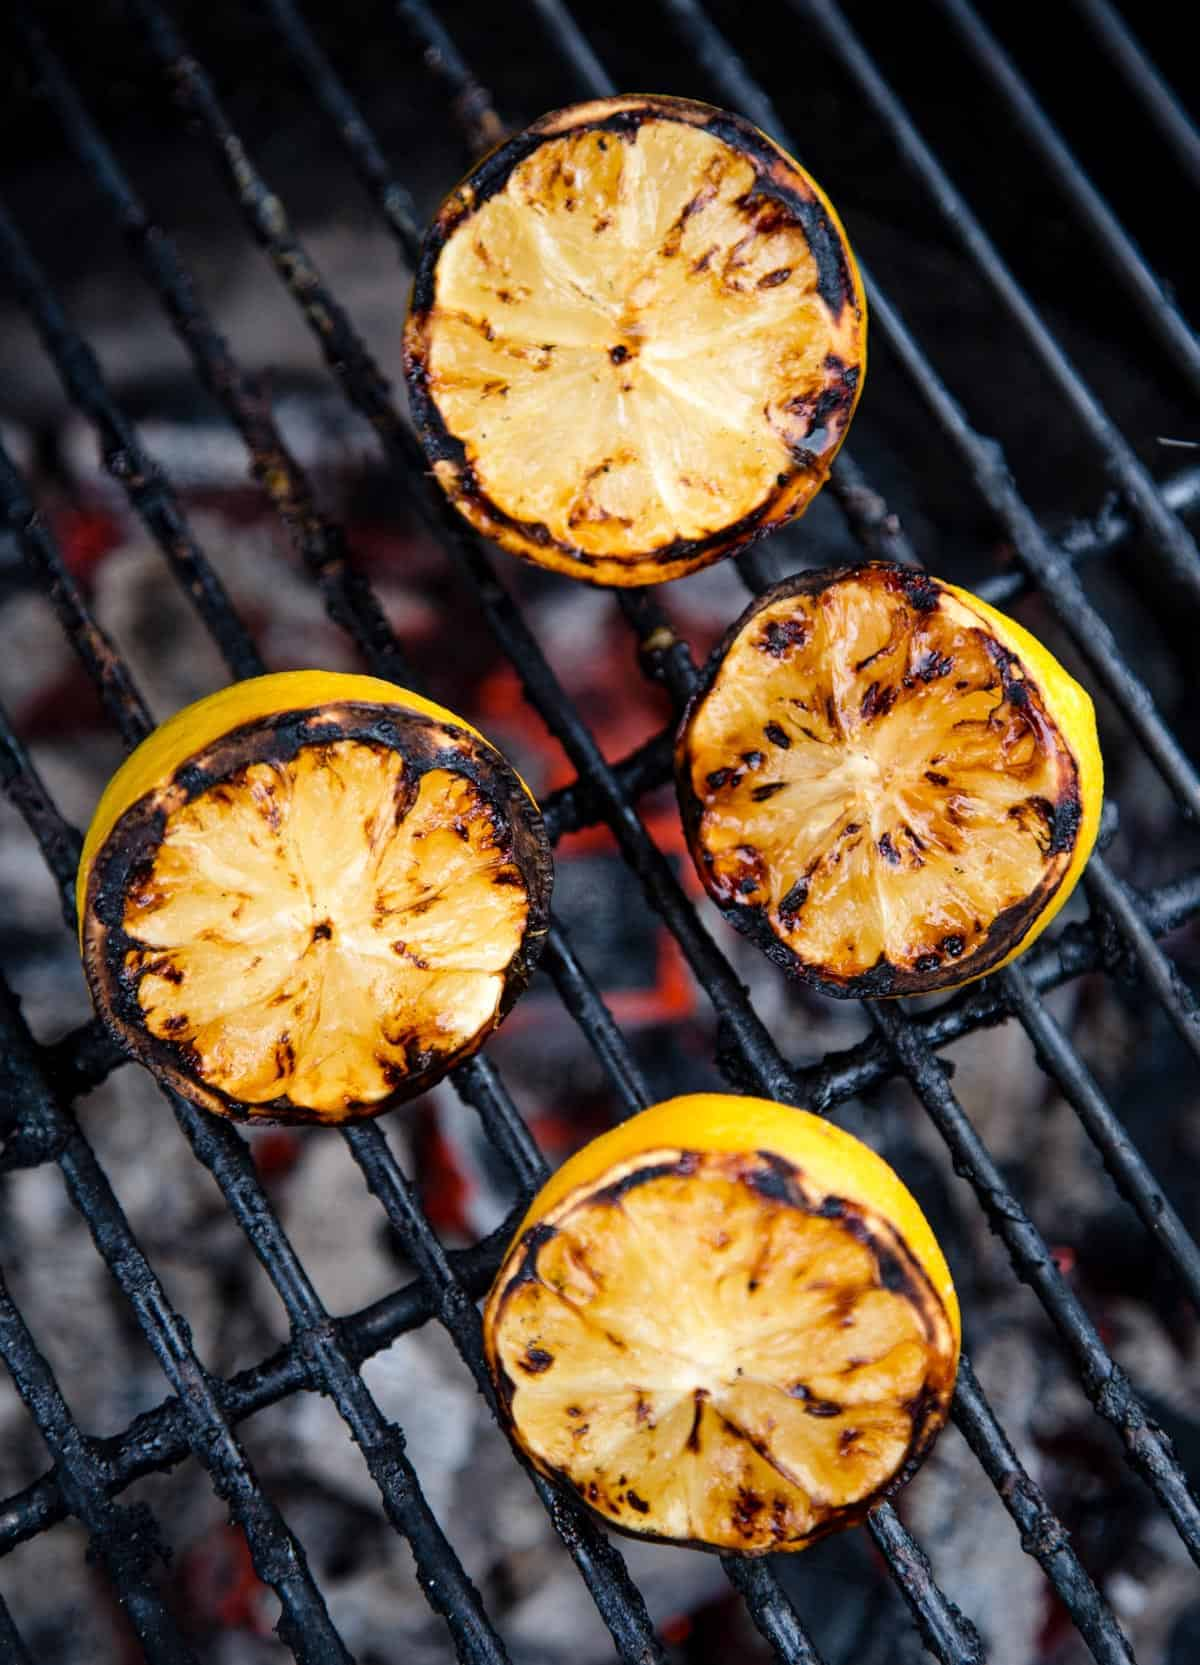 Grilled Lemons on grill grates